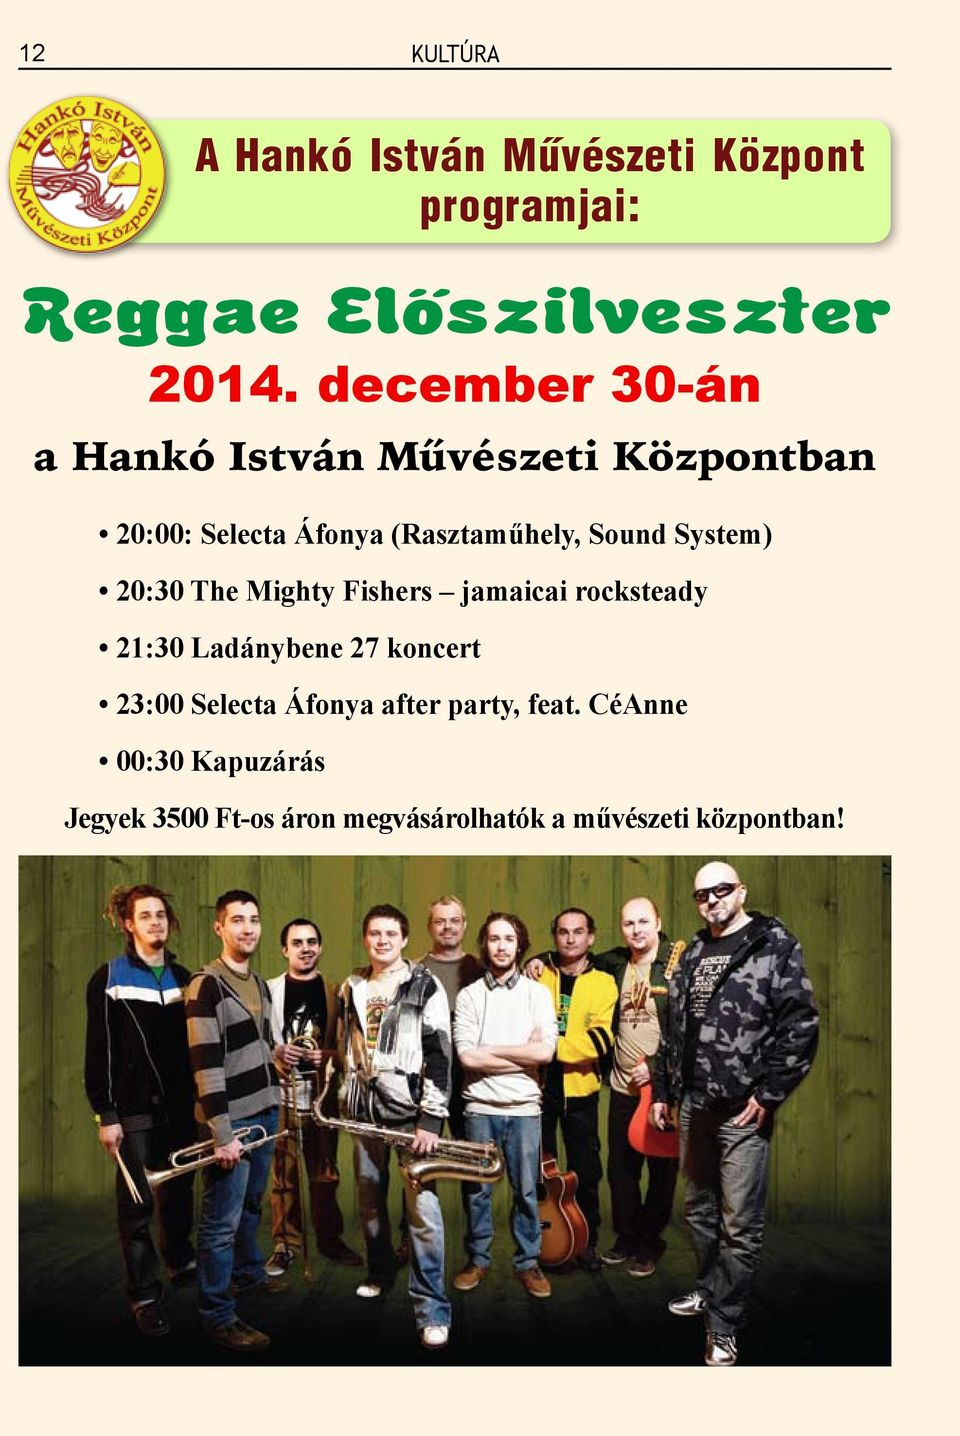 System) 20:30 The Mighty Fishers jamaicai rocksteady 21:30 Ladánybene 27 koncert 23:00 Selecta